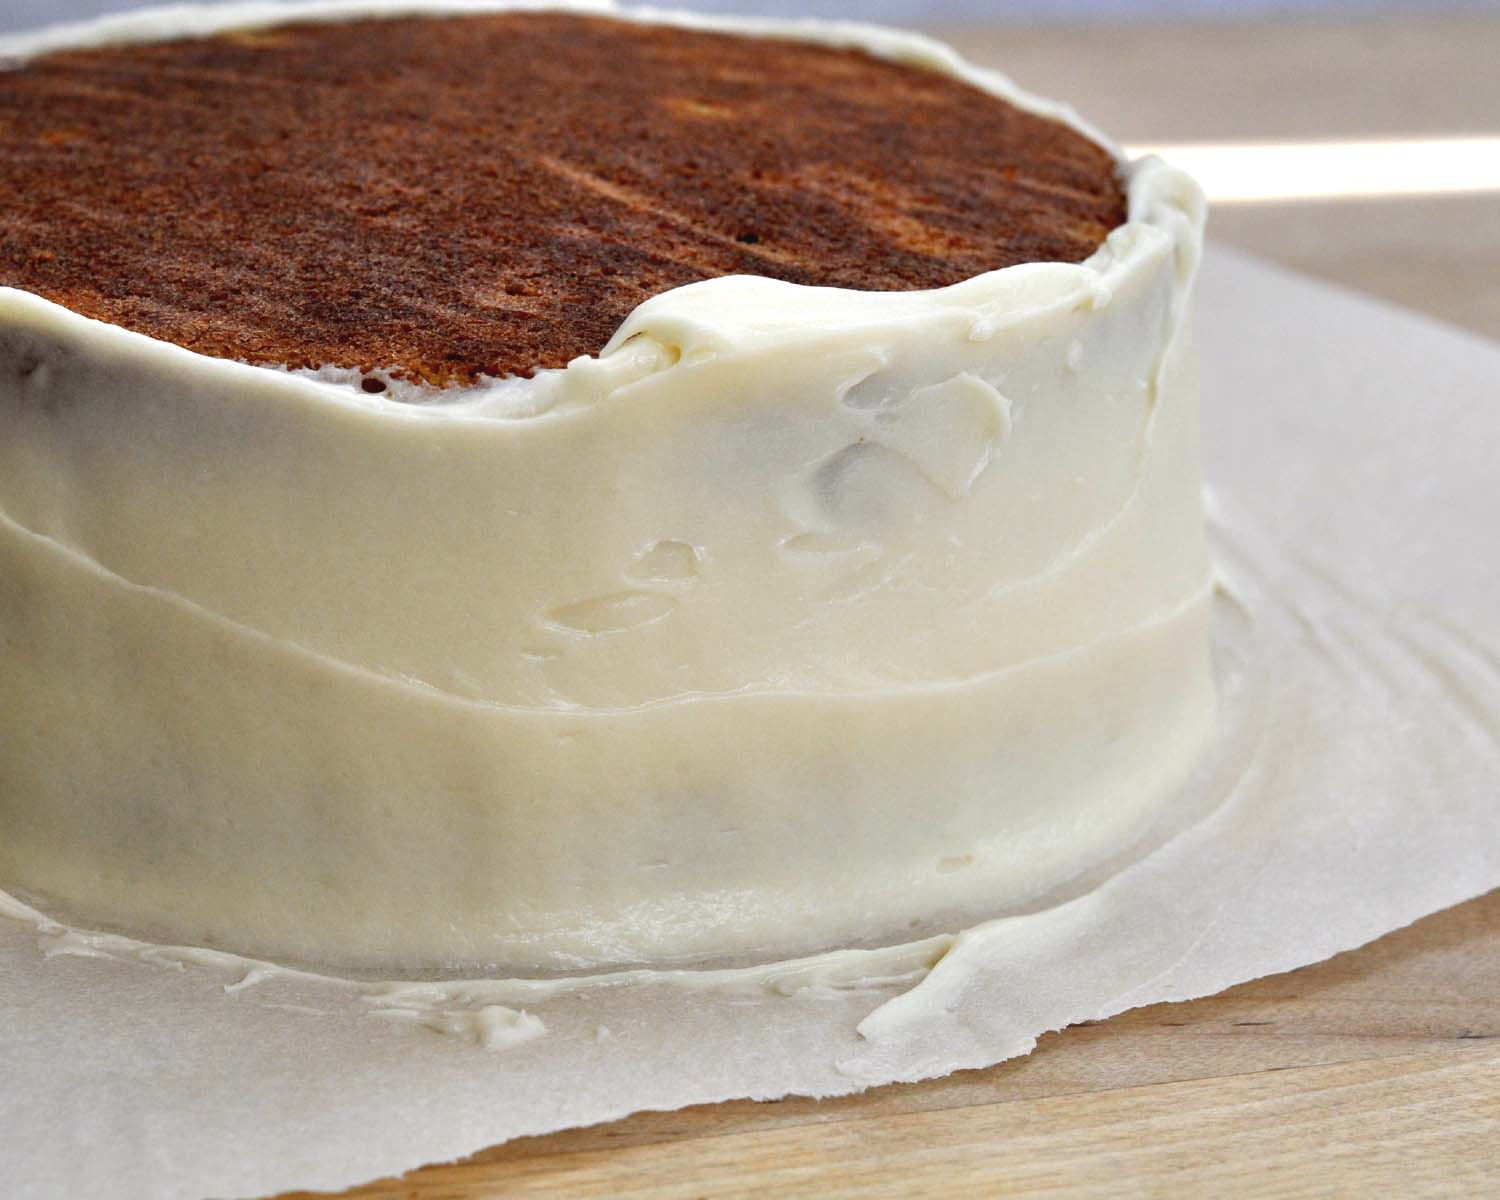 Ice Cream Cake Icing Recipes: Beki Cook's Cake Blog: Carrot Cake With Cream Cheese